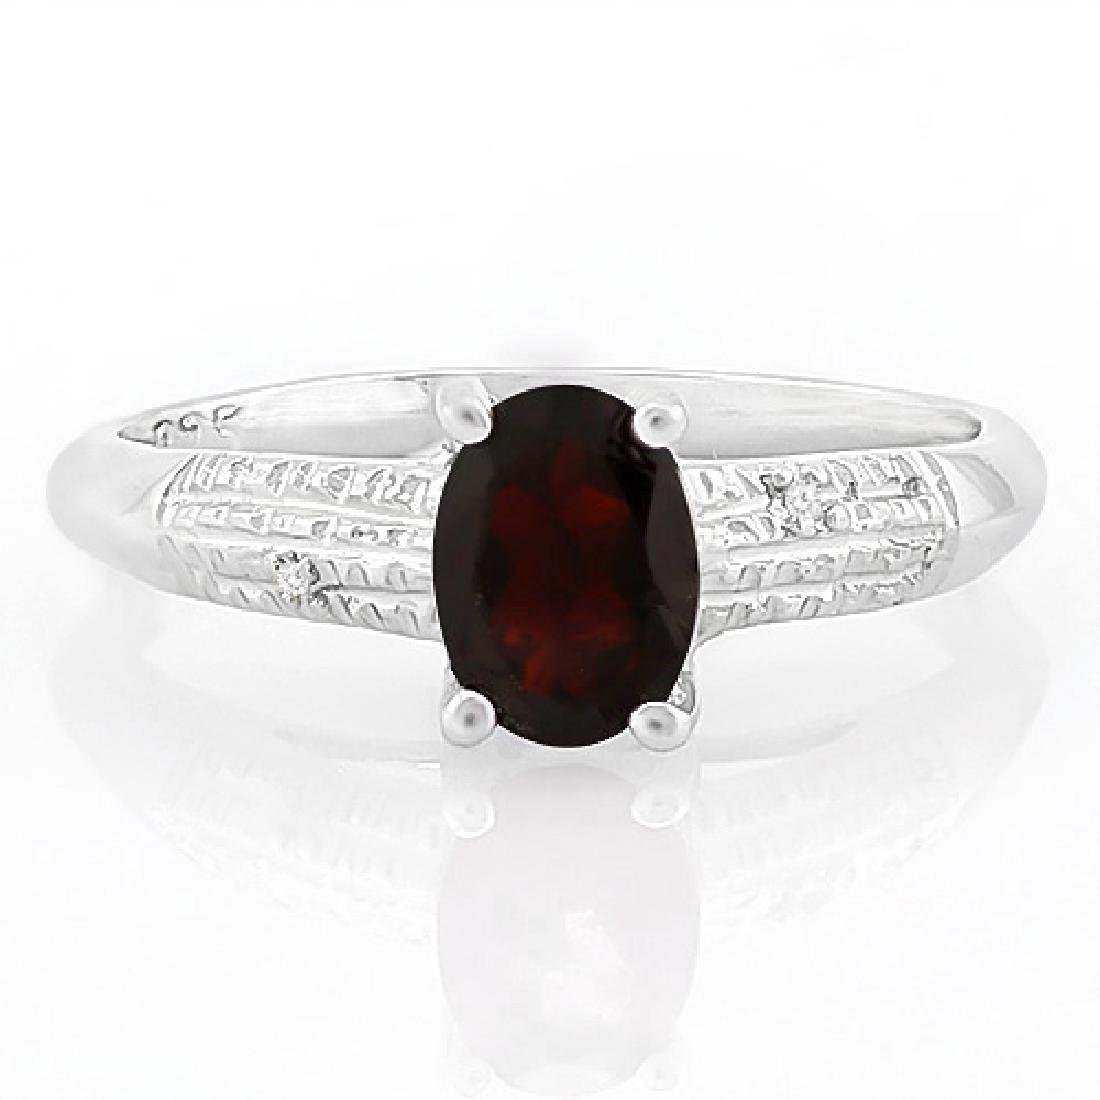 4/5 CARAT GARNET & DIAMOND 925 STERLING SILVER RING